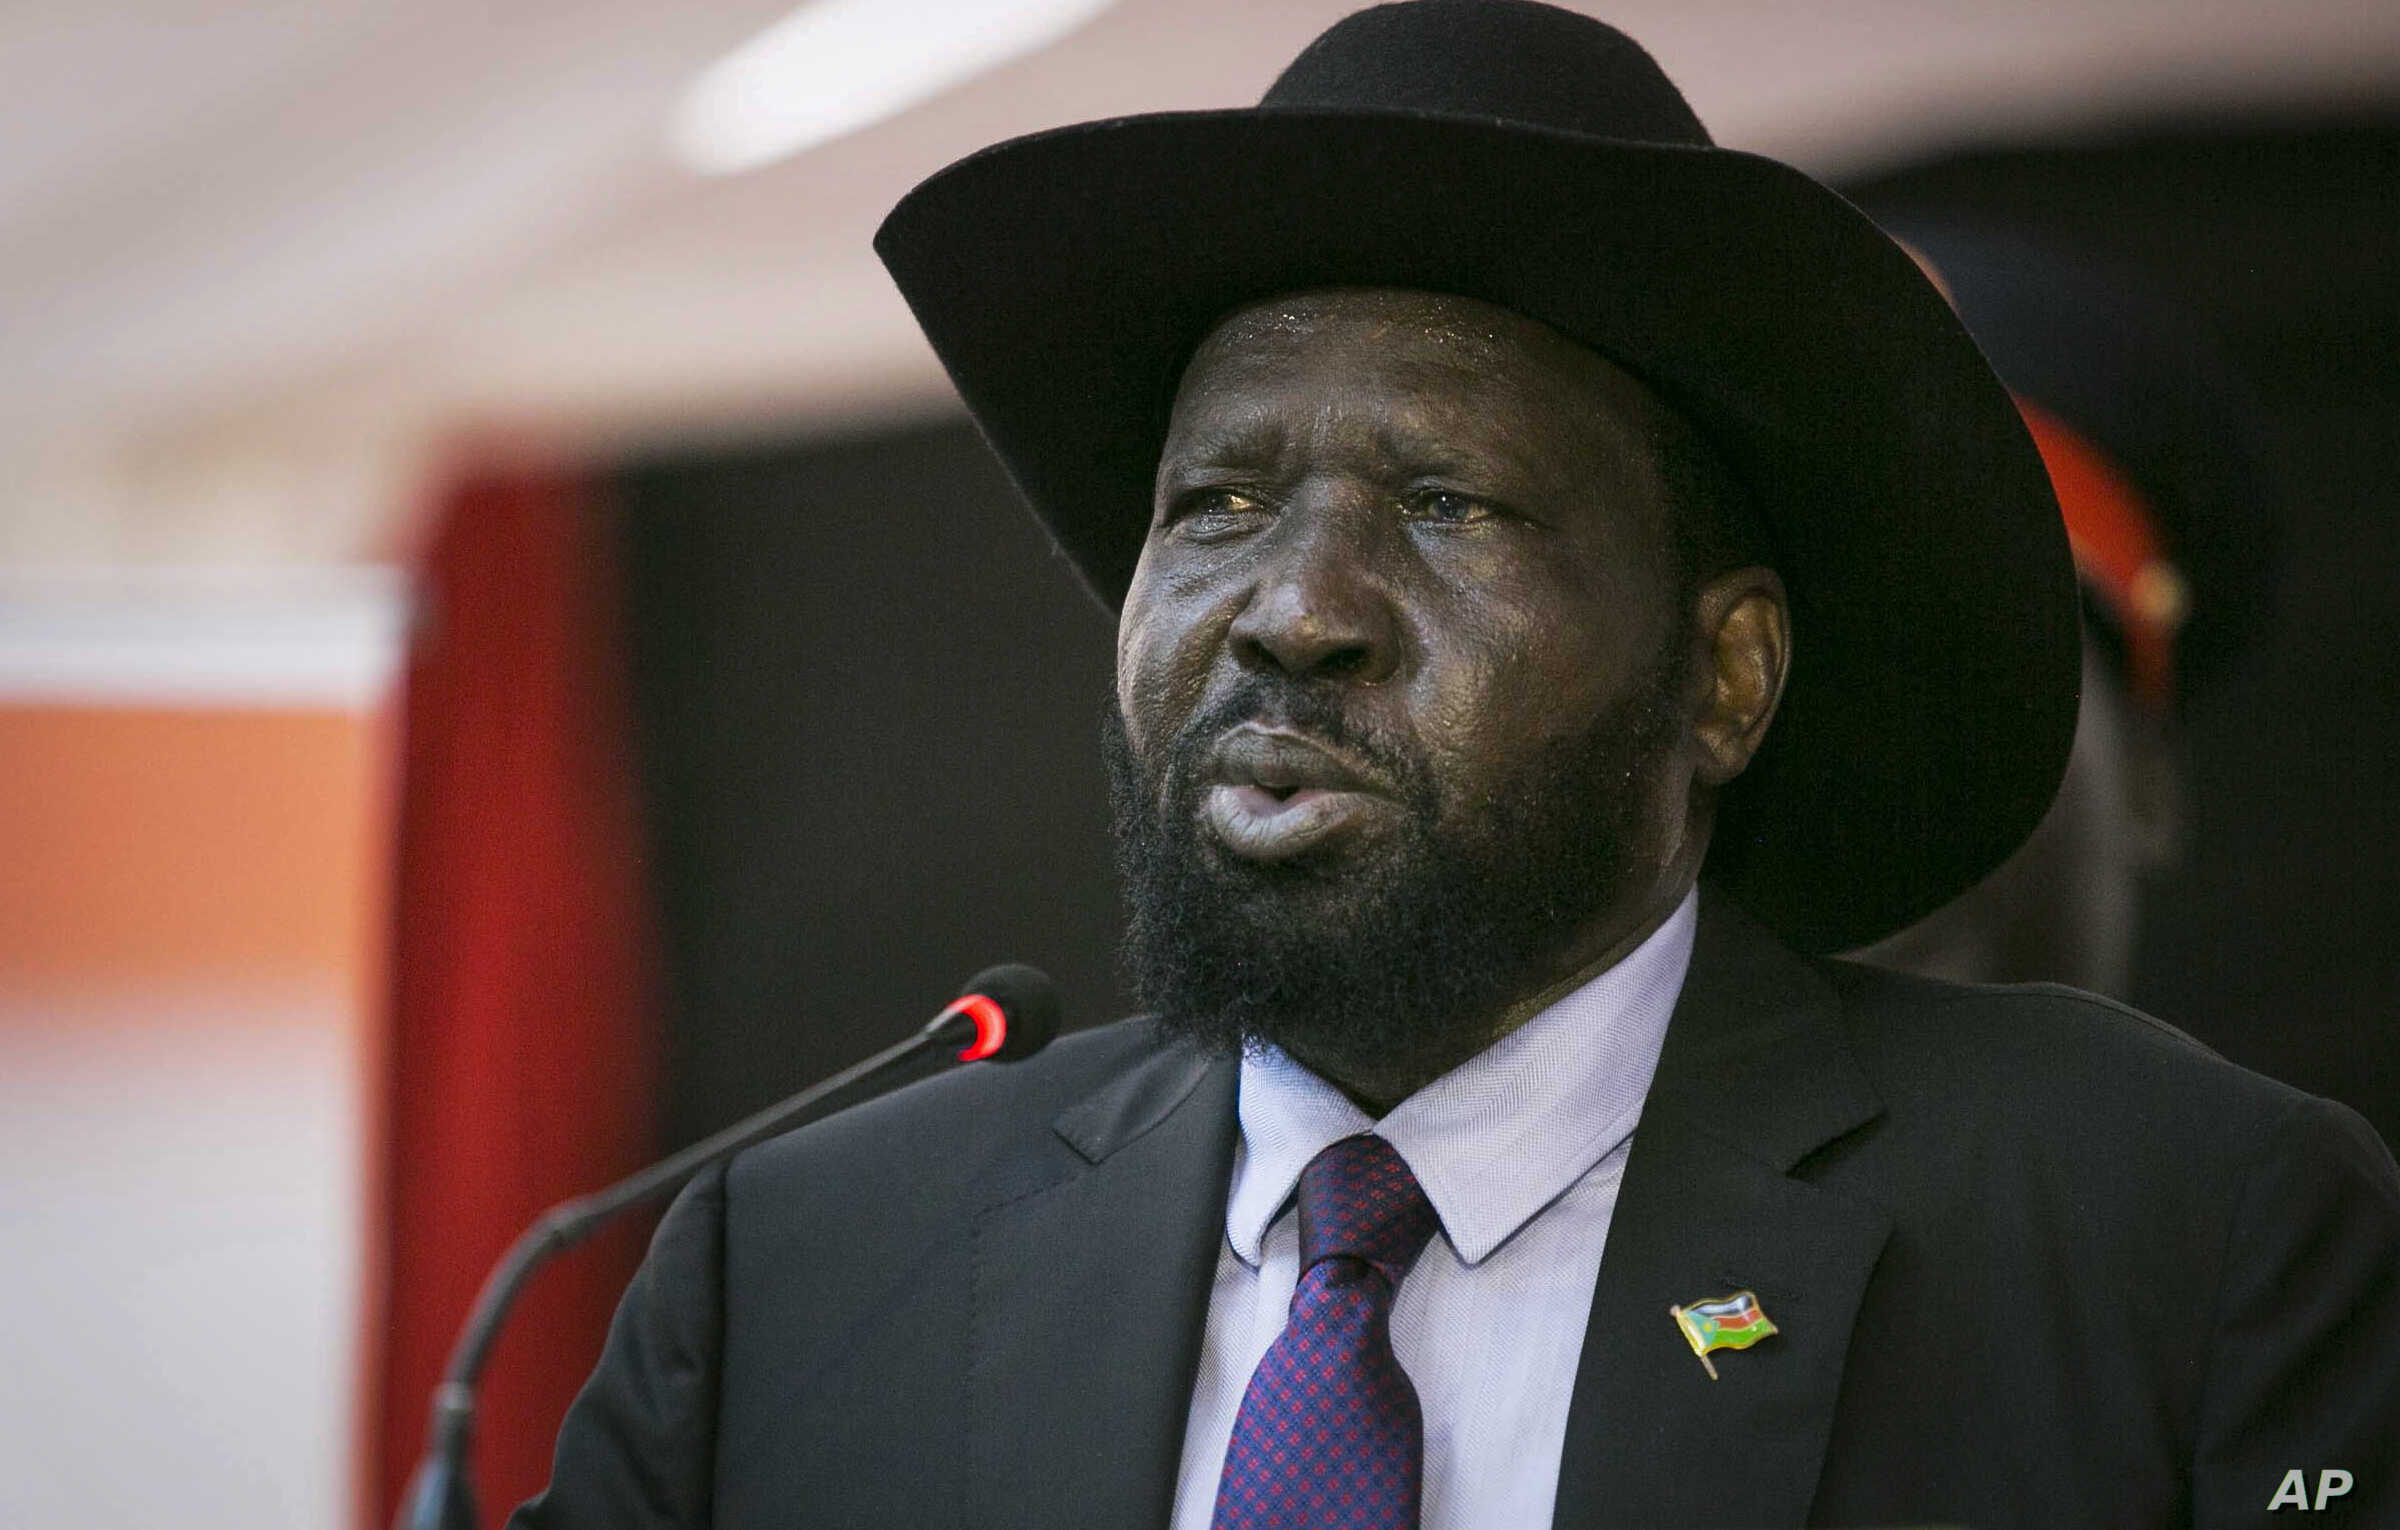 South Sudan's President Salva Kiir speaks at a special party conference in Juba, South Sudan Thursday, May 3, 2018.